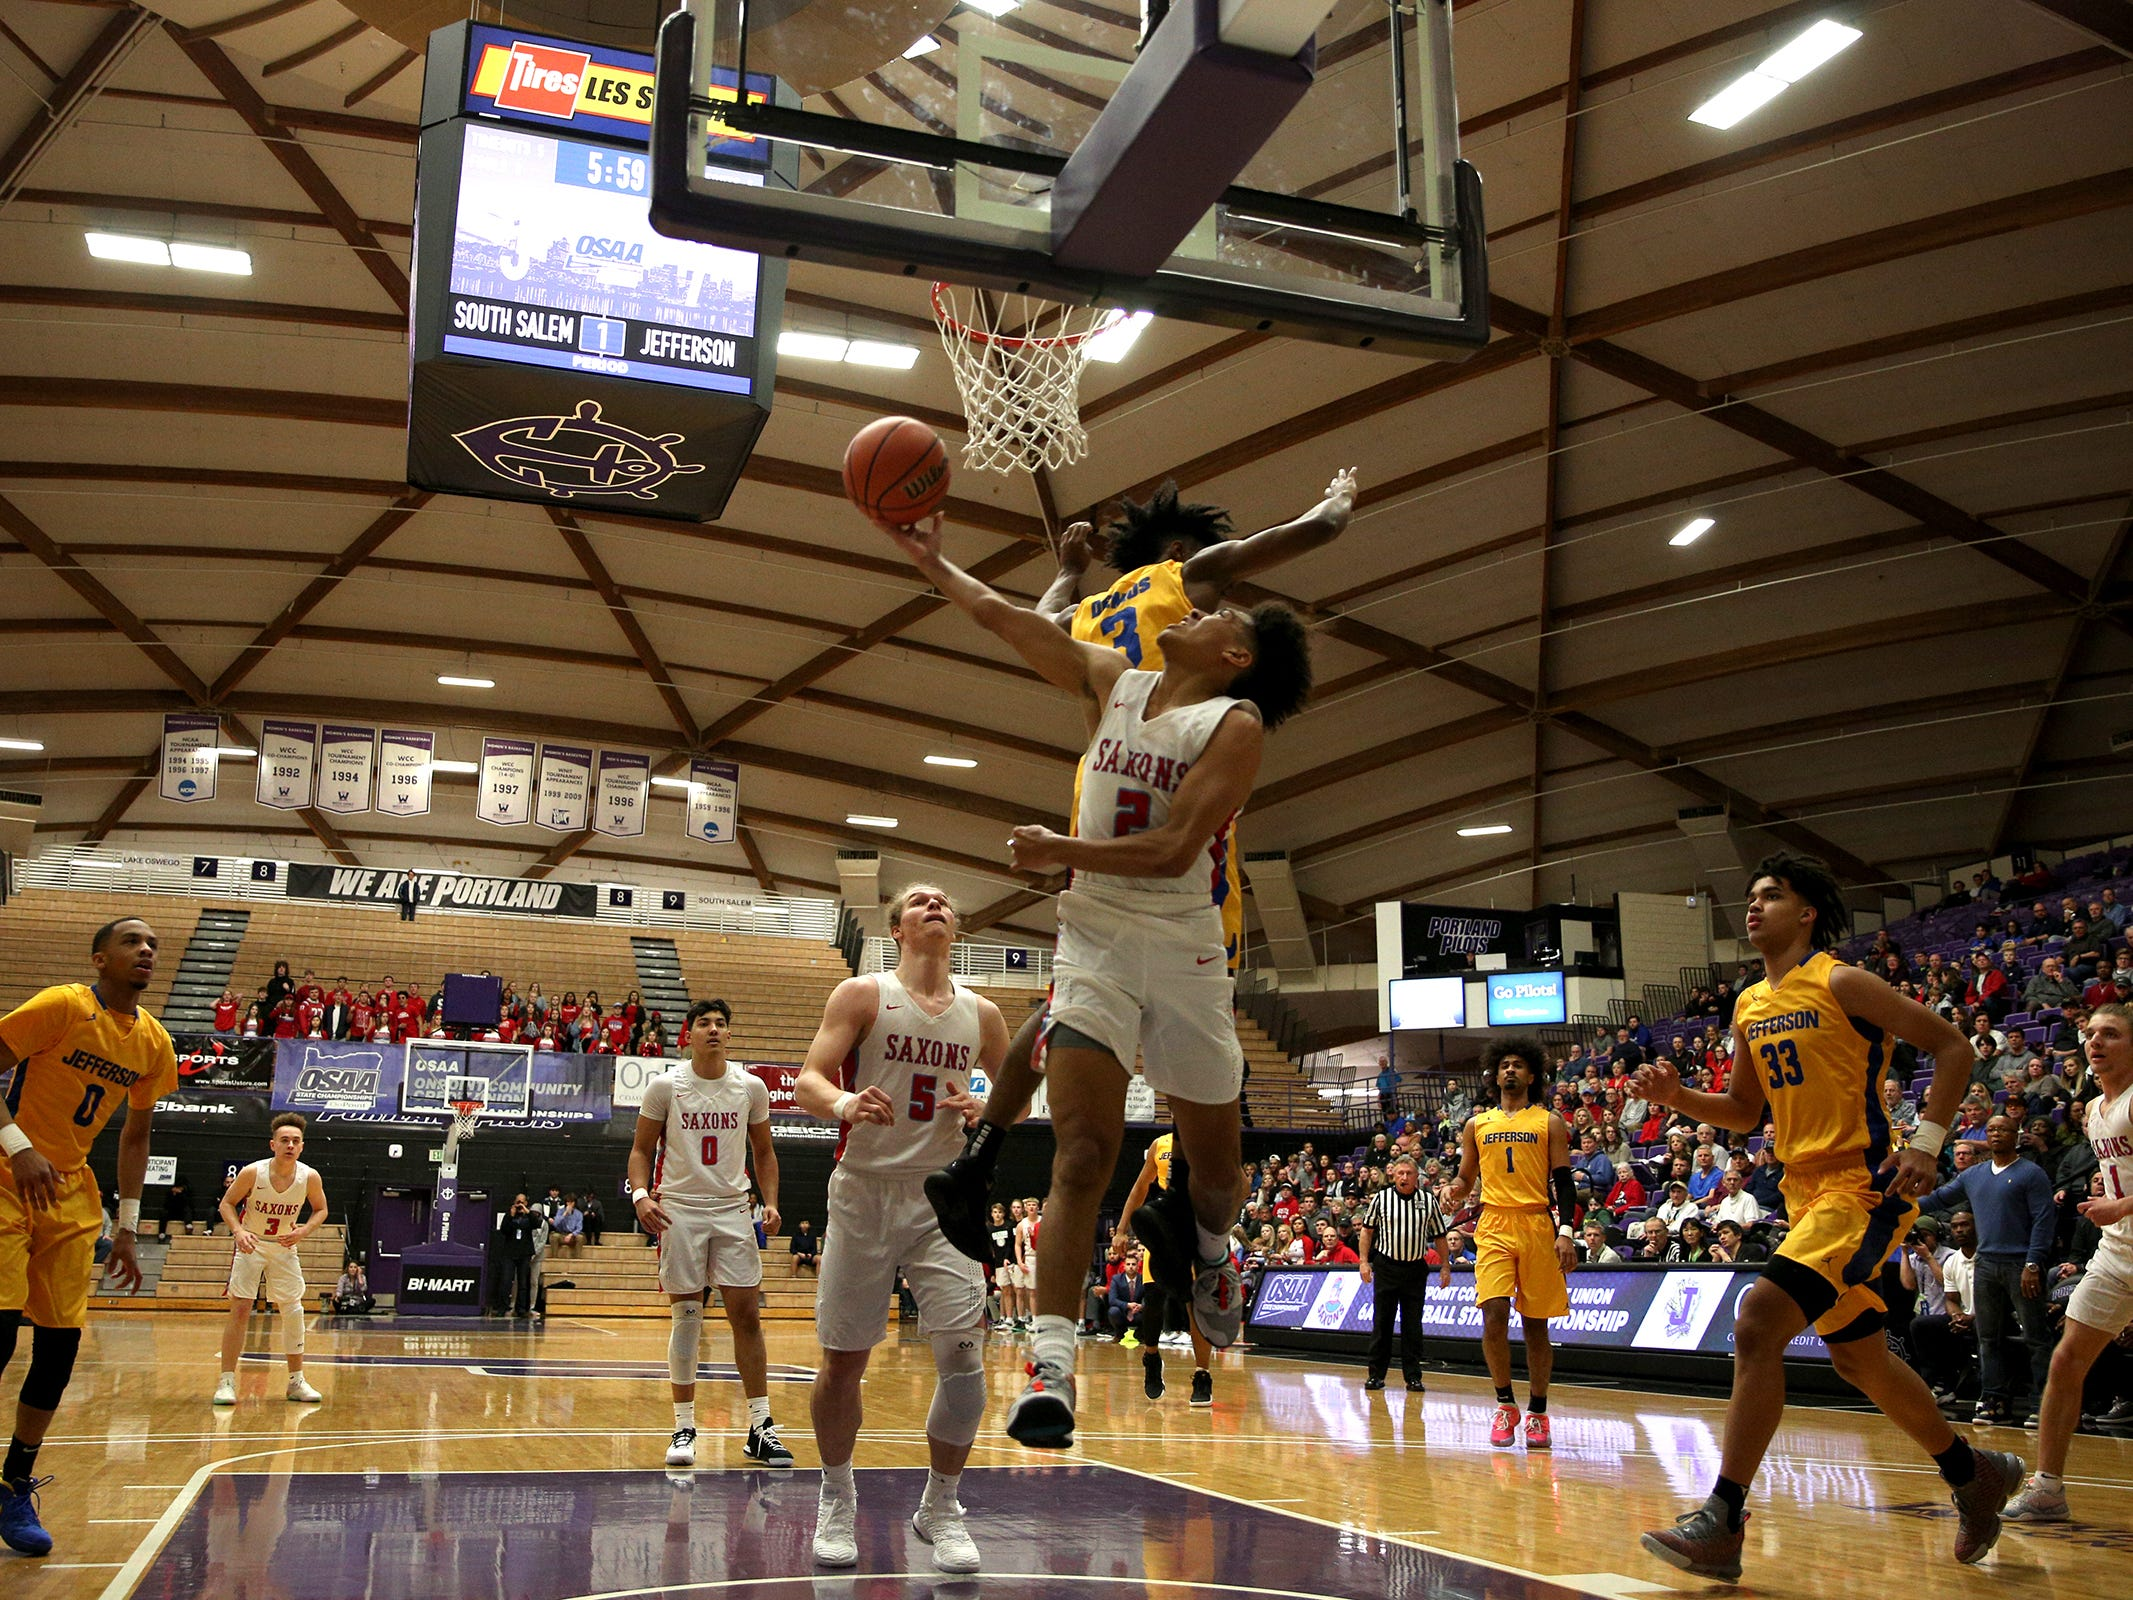 South Salem's Jaden Nielsen-Skinner (2) attempts to get a shot in during the South Salem vs. Jefferson boys basketball OSAA 6A semifinal game at Chiles Center in Portland on Friday, March 8, 2019.